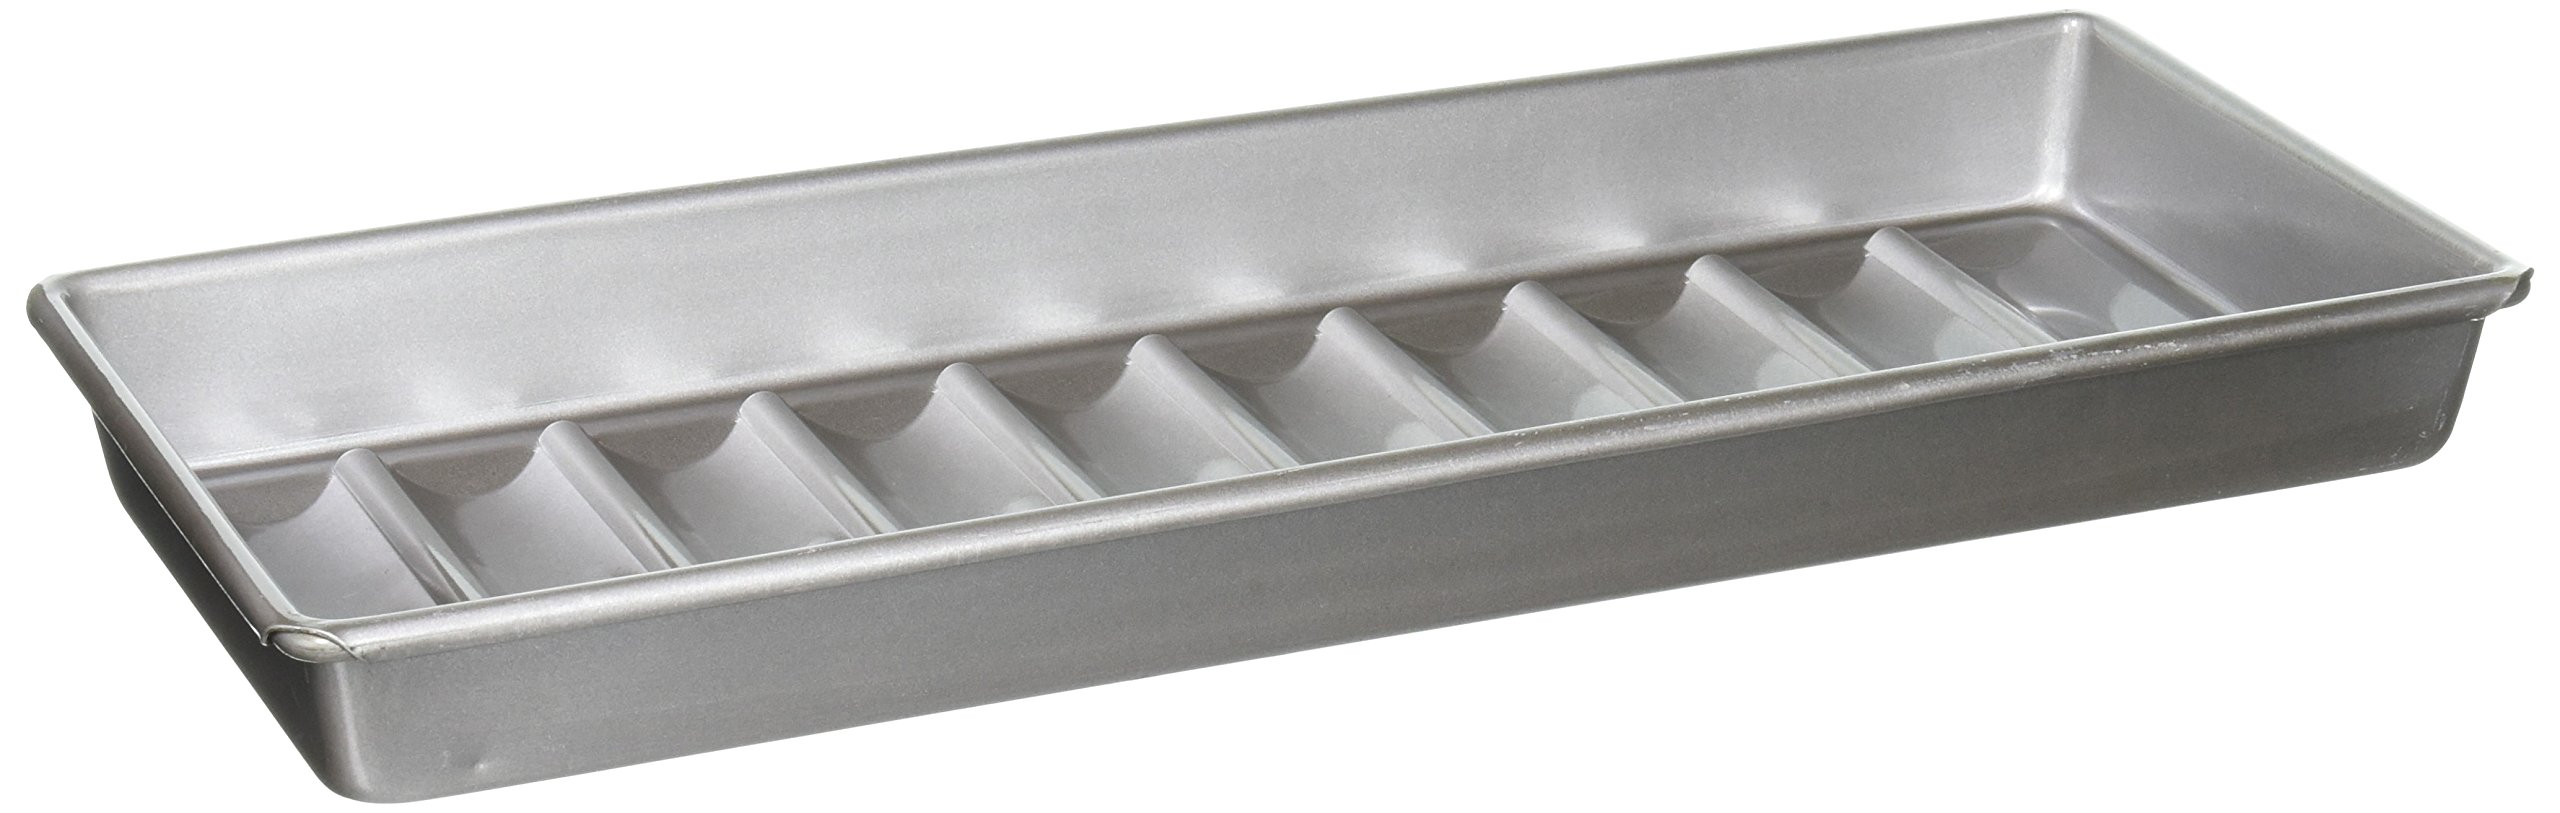 USA Pan Bakeware Aluminized Steel New England Hot Dog Pan